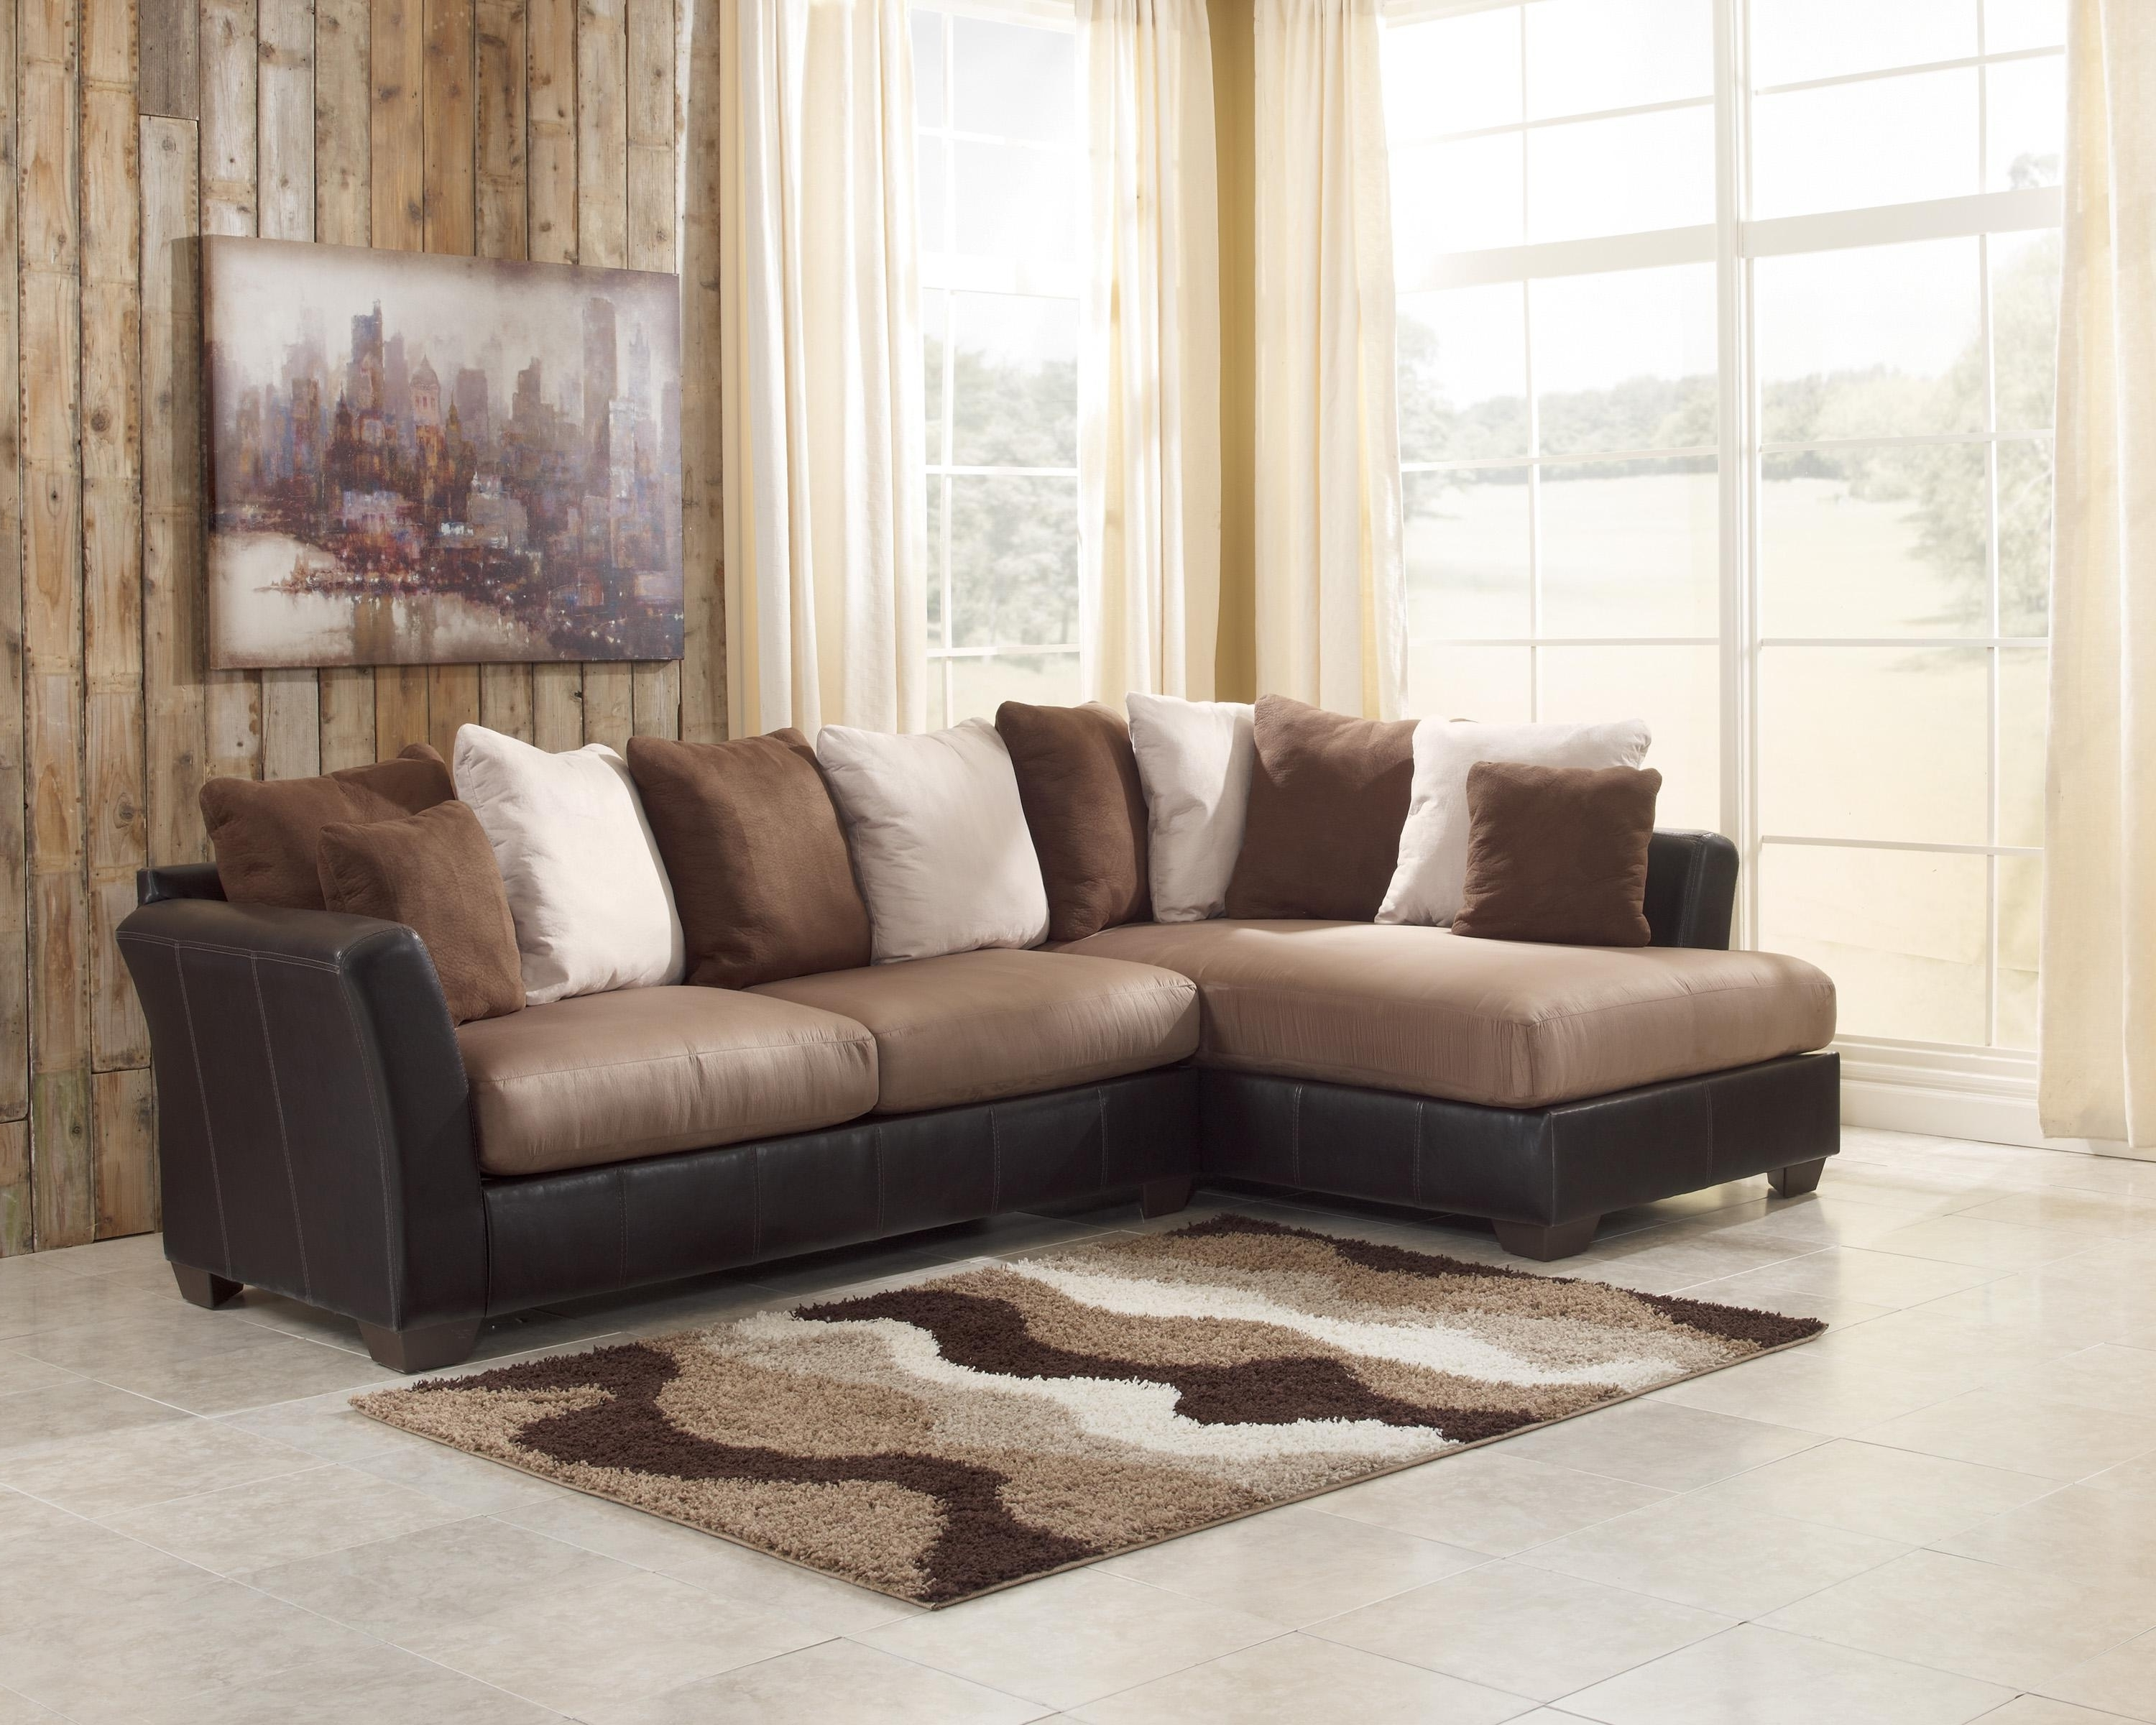 15 Best Collection of Individual Piece Sectional Sofas